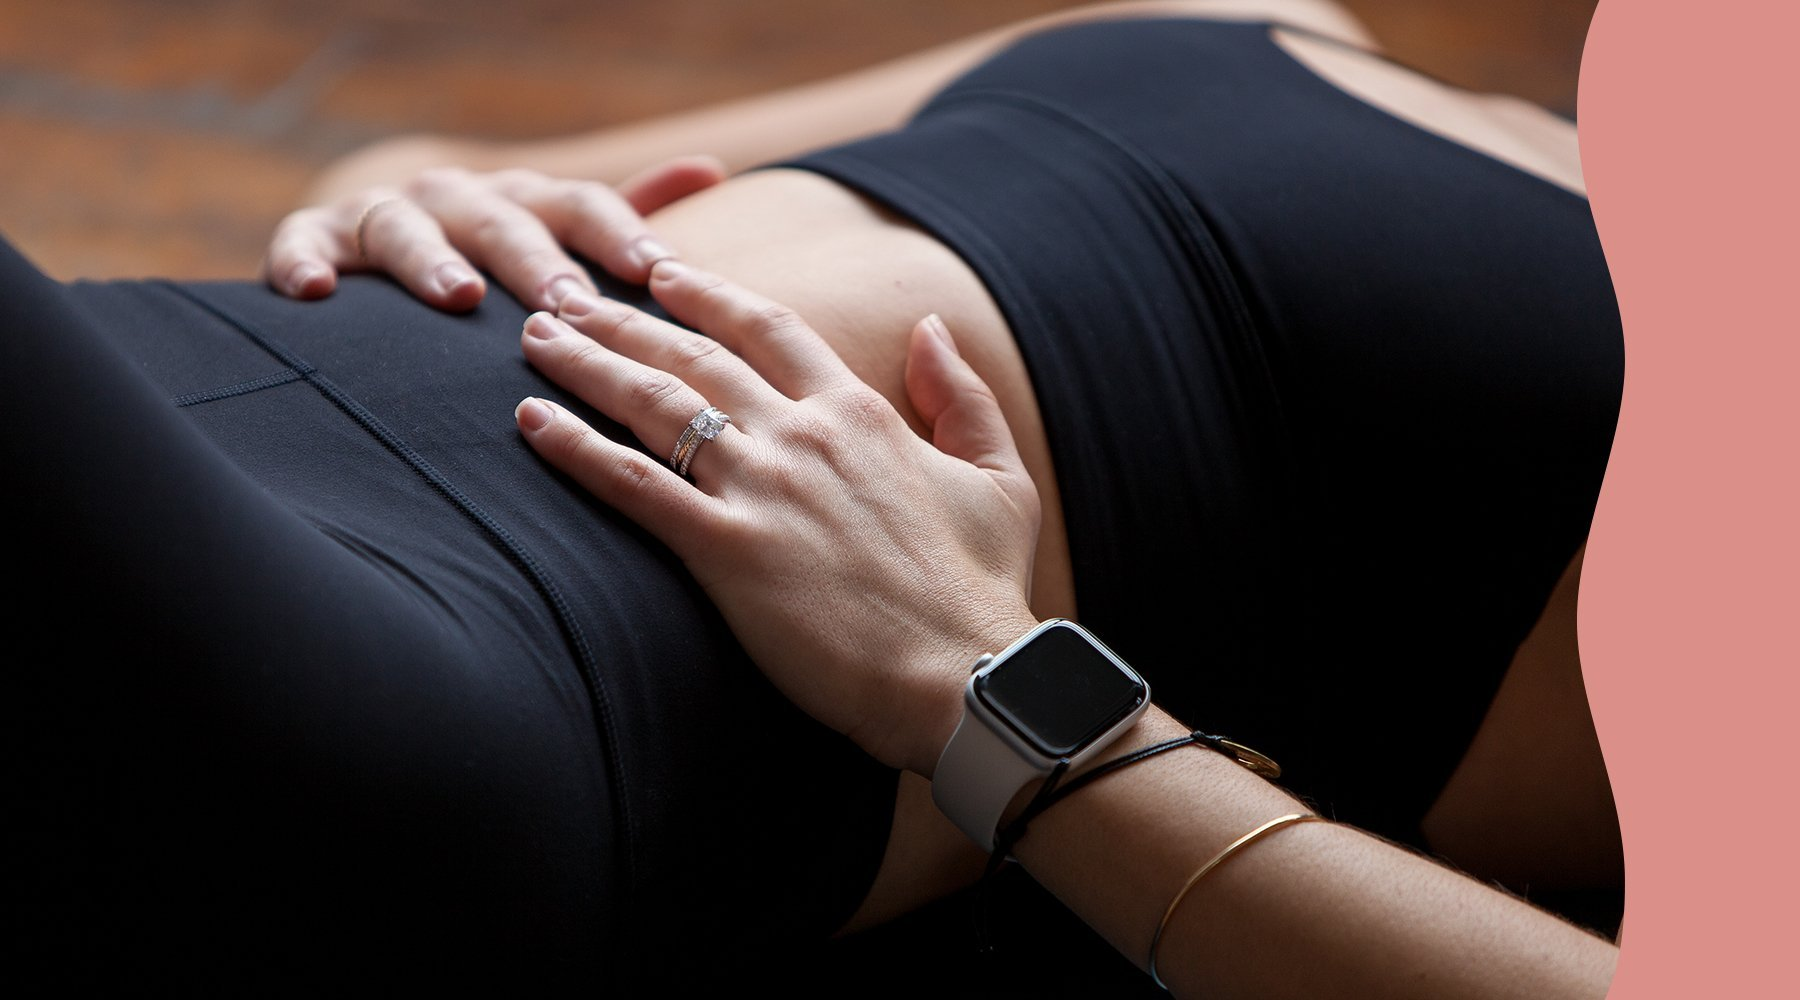 How to make exercising while pregnant less scary